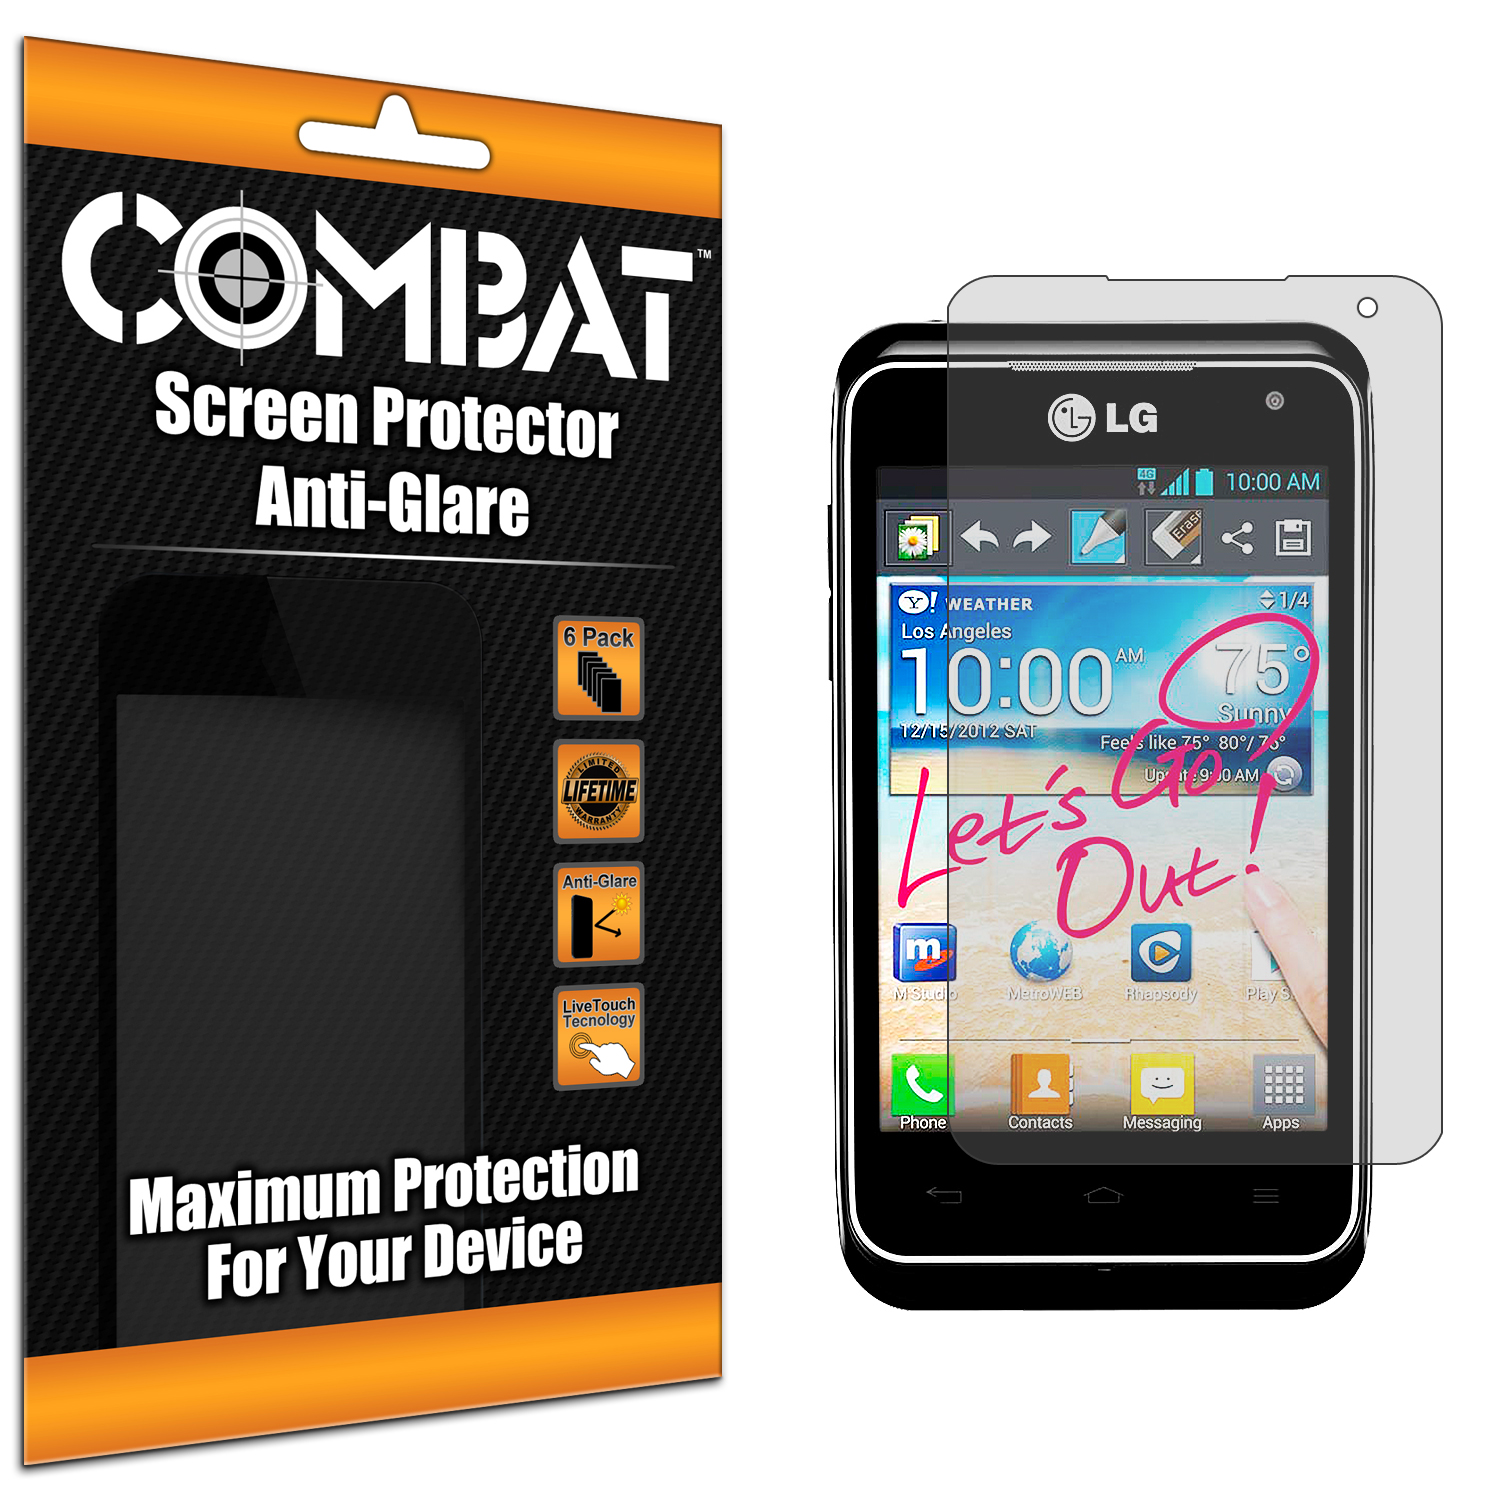 LG Motion MS770 Combat 6 Pack Anti-Glare Matte Screen Protector